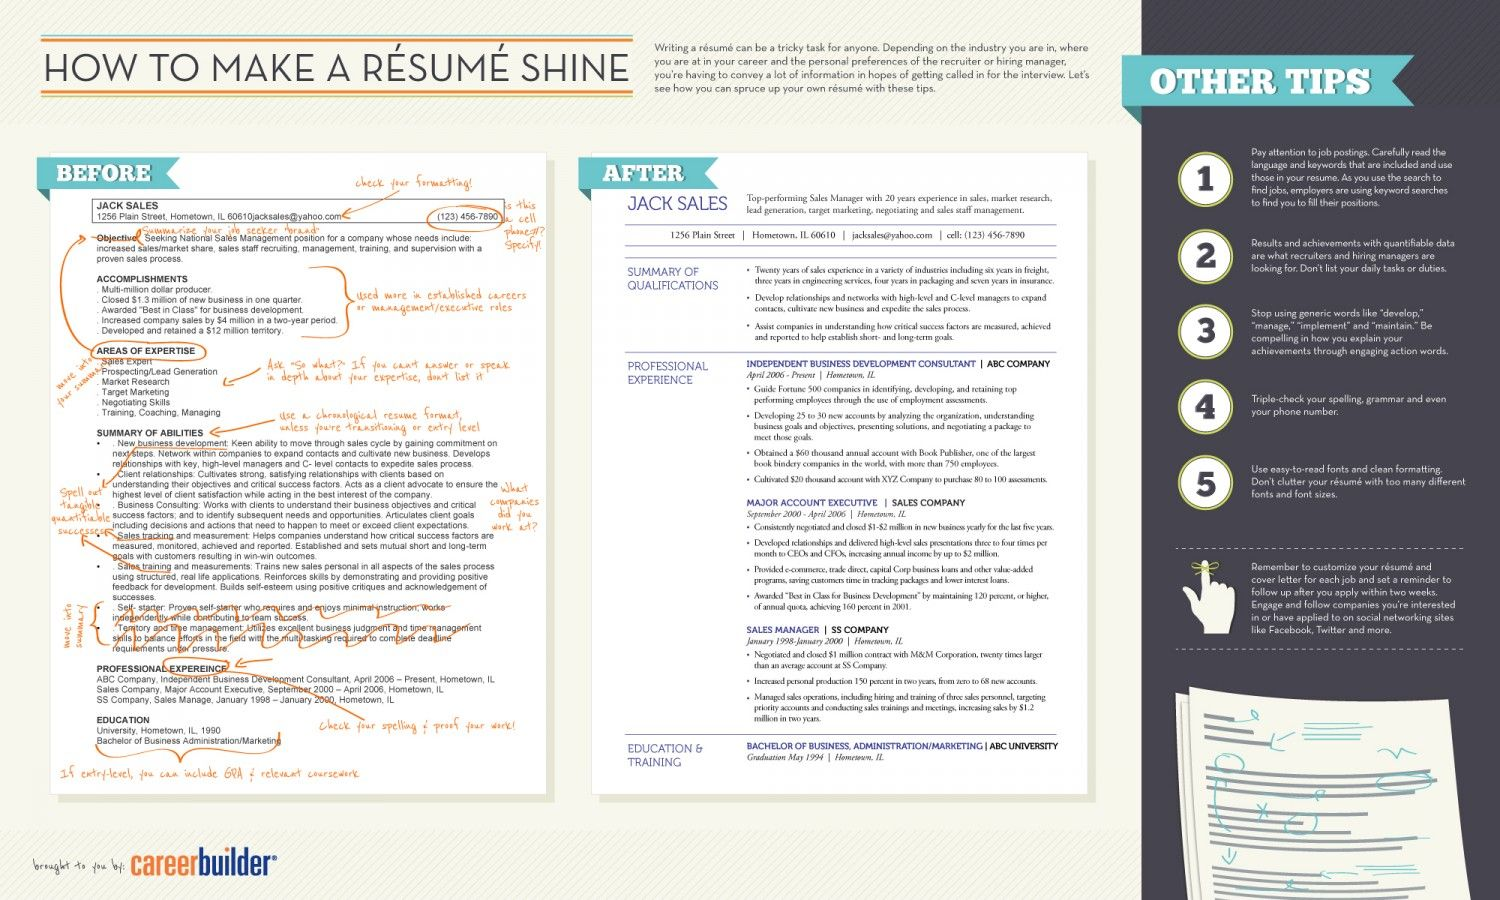 How To Do Resume For Job Endearing How To Make A Résumé Shine Infographic  Get A Job  Pinterest .